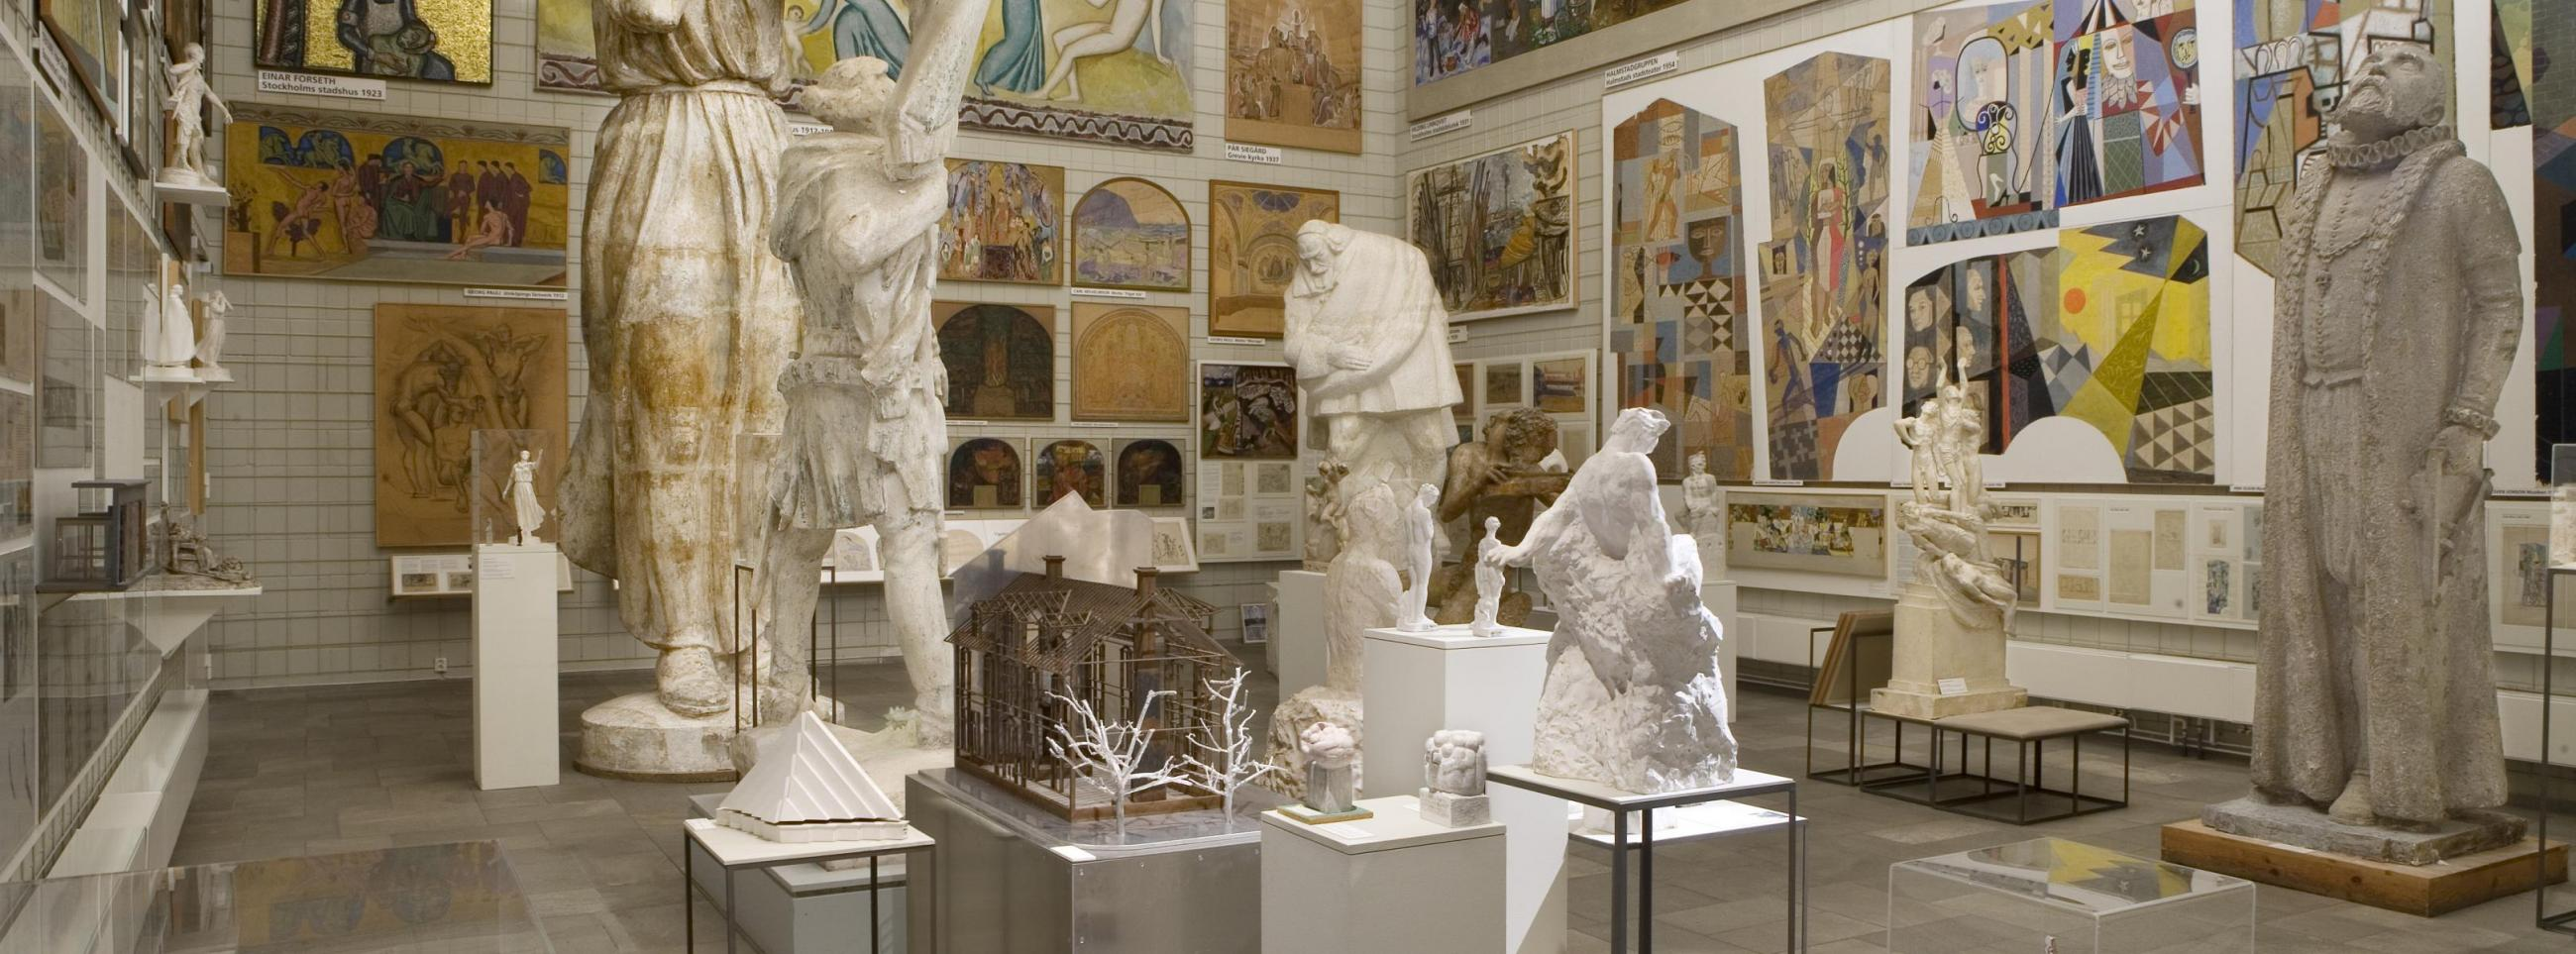 A room covered with painting and large antique sculptures at Skissernas museum